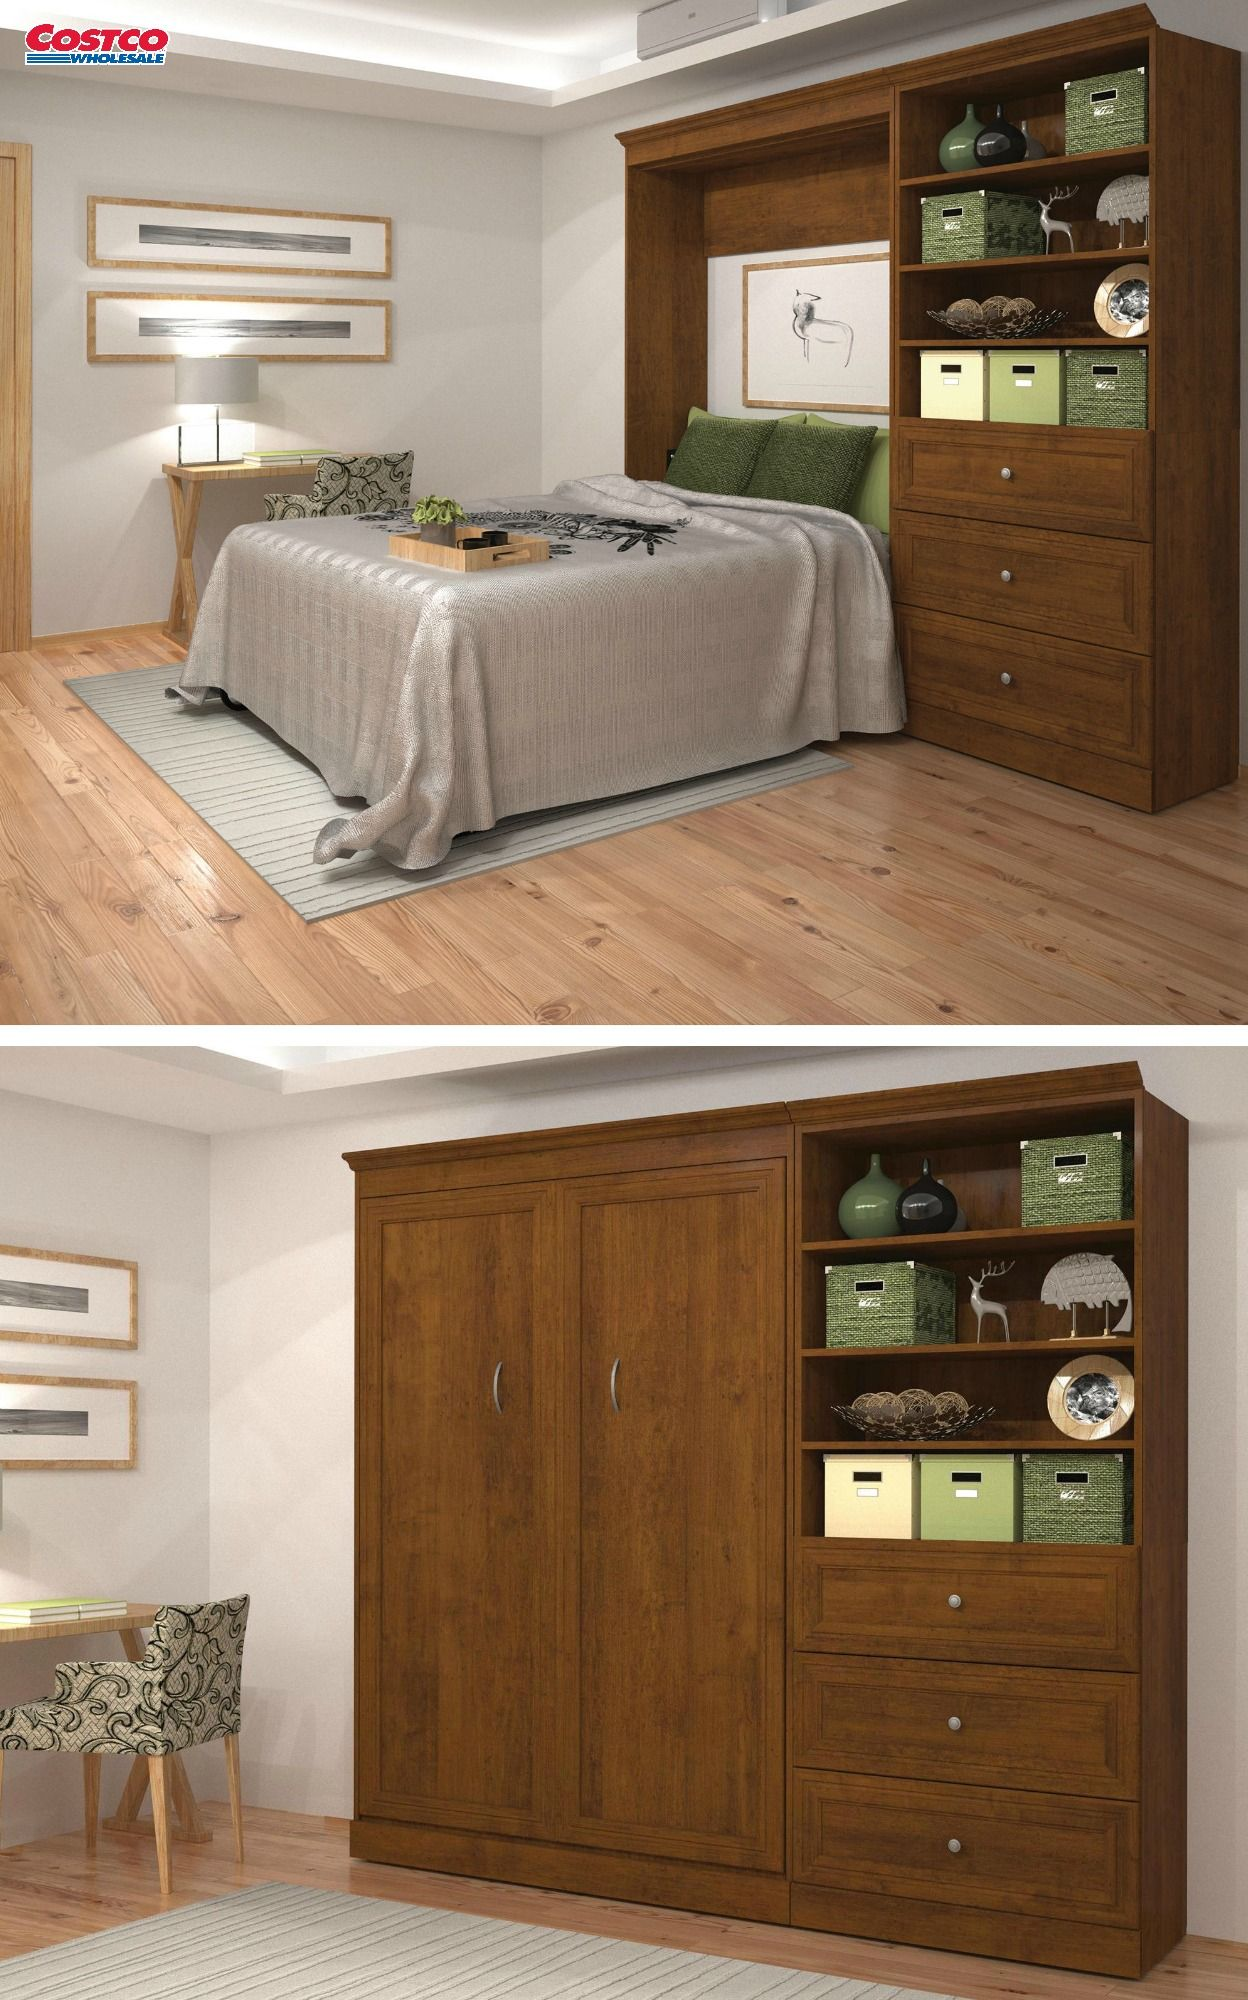 Bestar S New Audrea Wall Bed Kit Comes Equipped With A 36 Storage